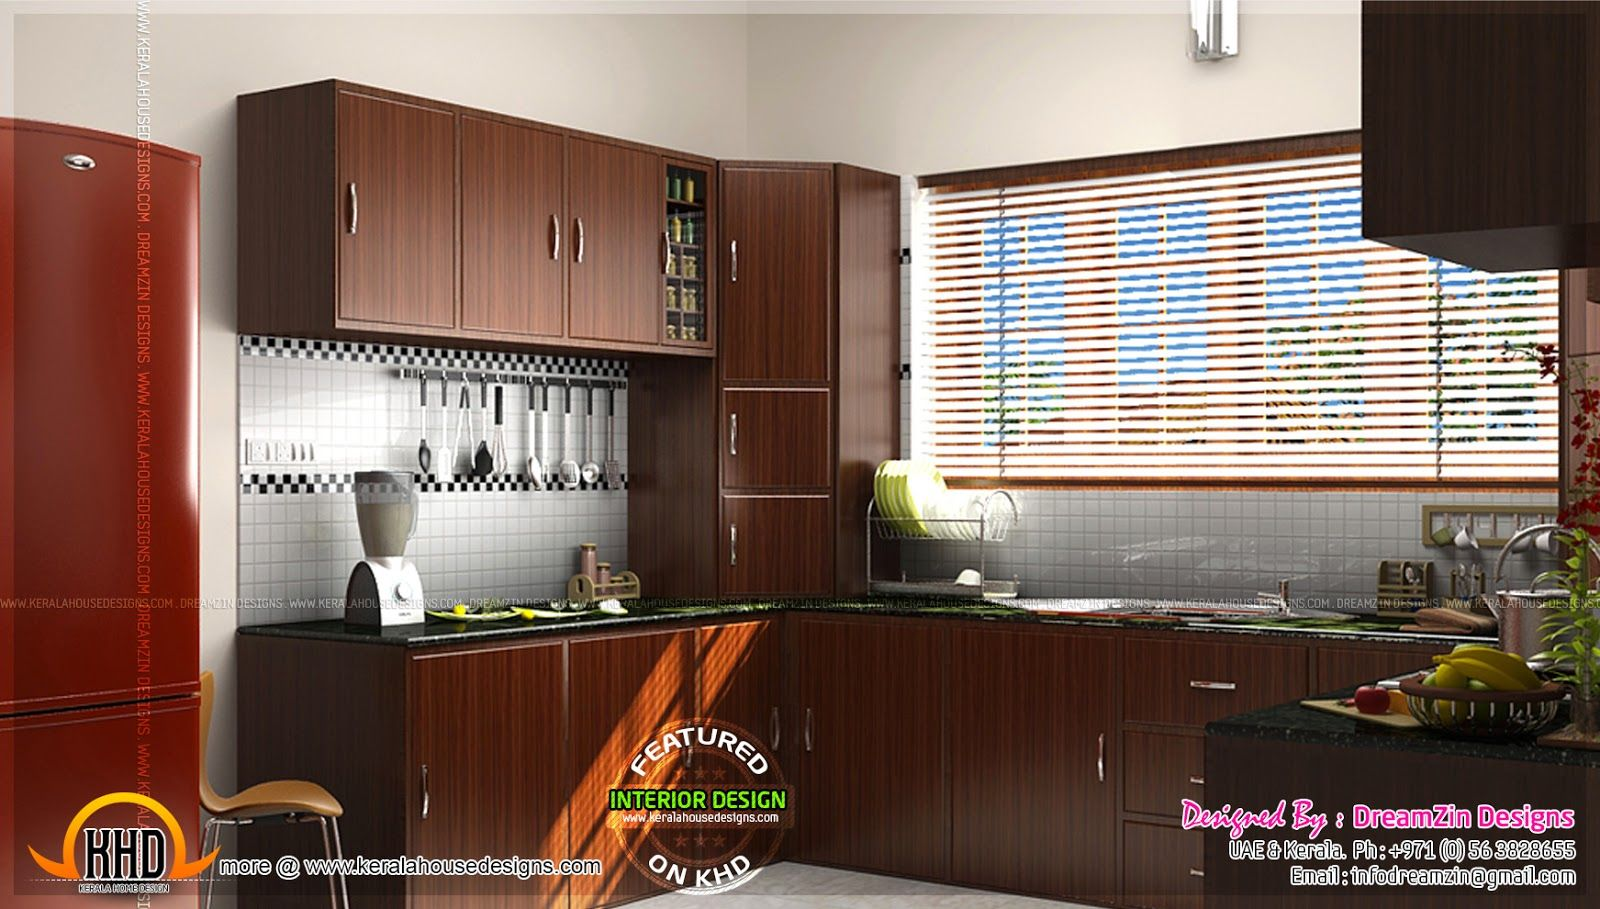 Modular Kitchen Ideas In Kerala Stainless Steel Finish ALUMINIUM